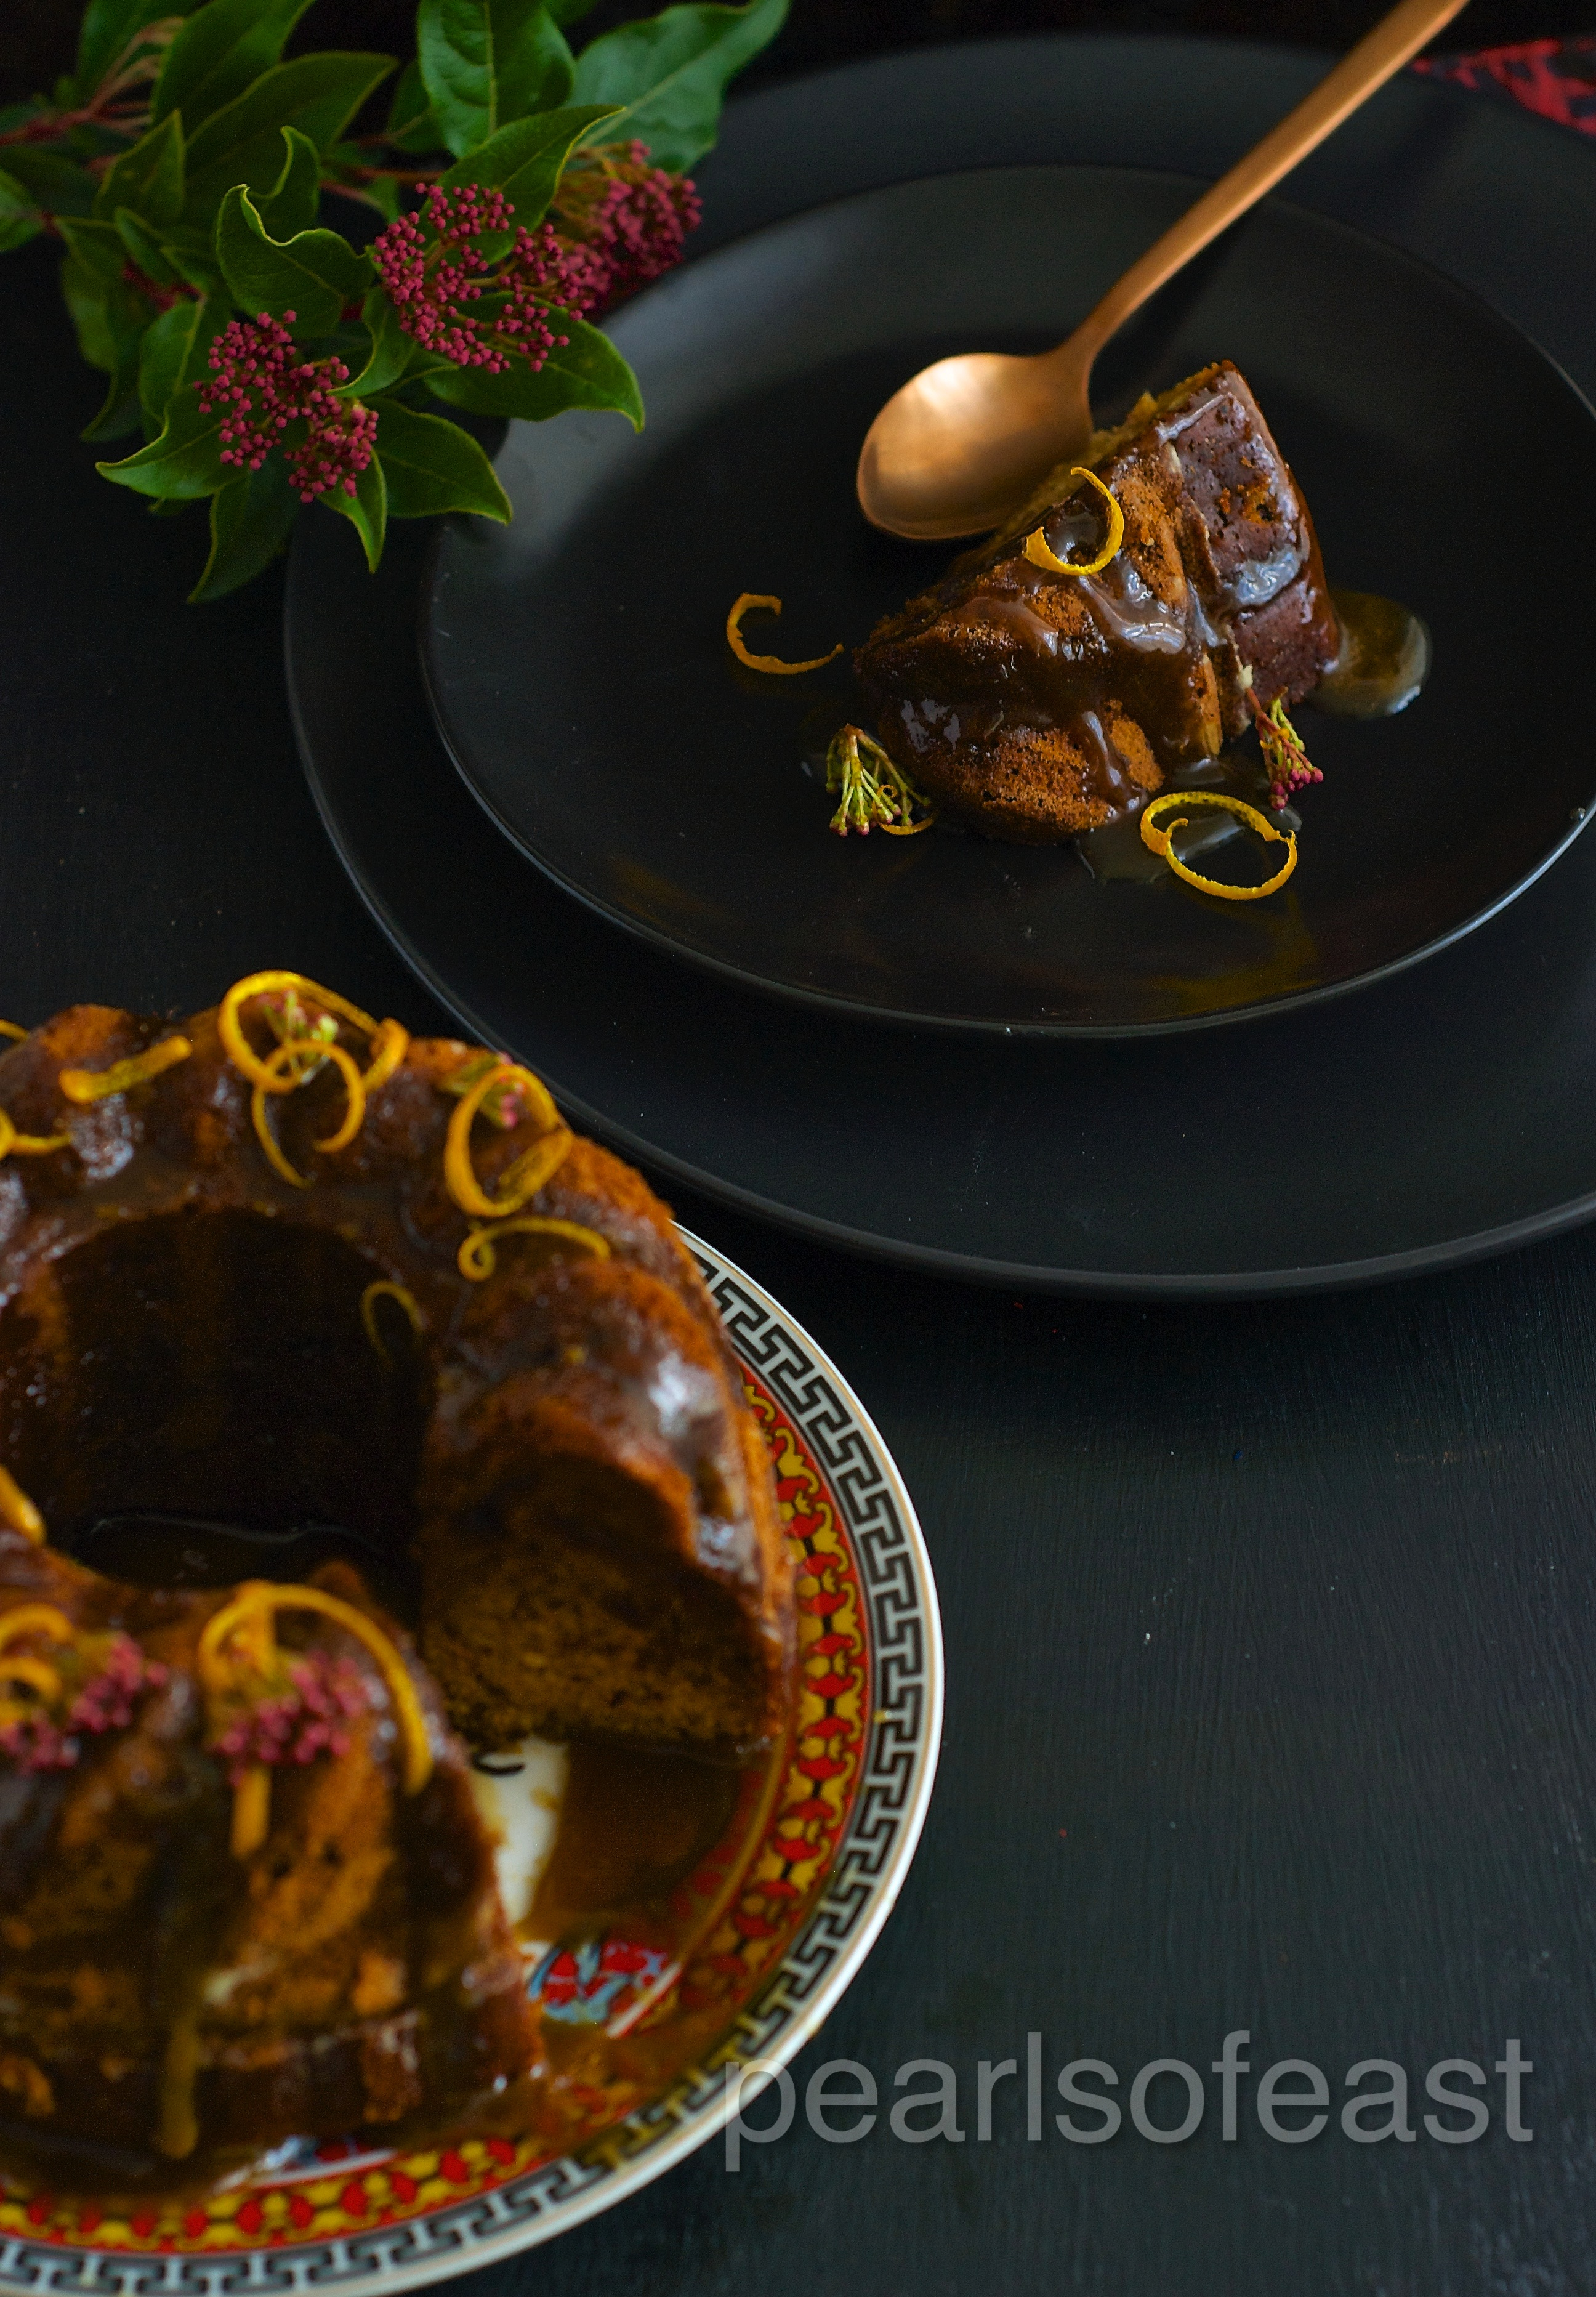 The dates in sticky date ginger cake makes it absolutely moist and the warm caramel sauce drizzled on it gives it an extra spark.